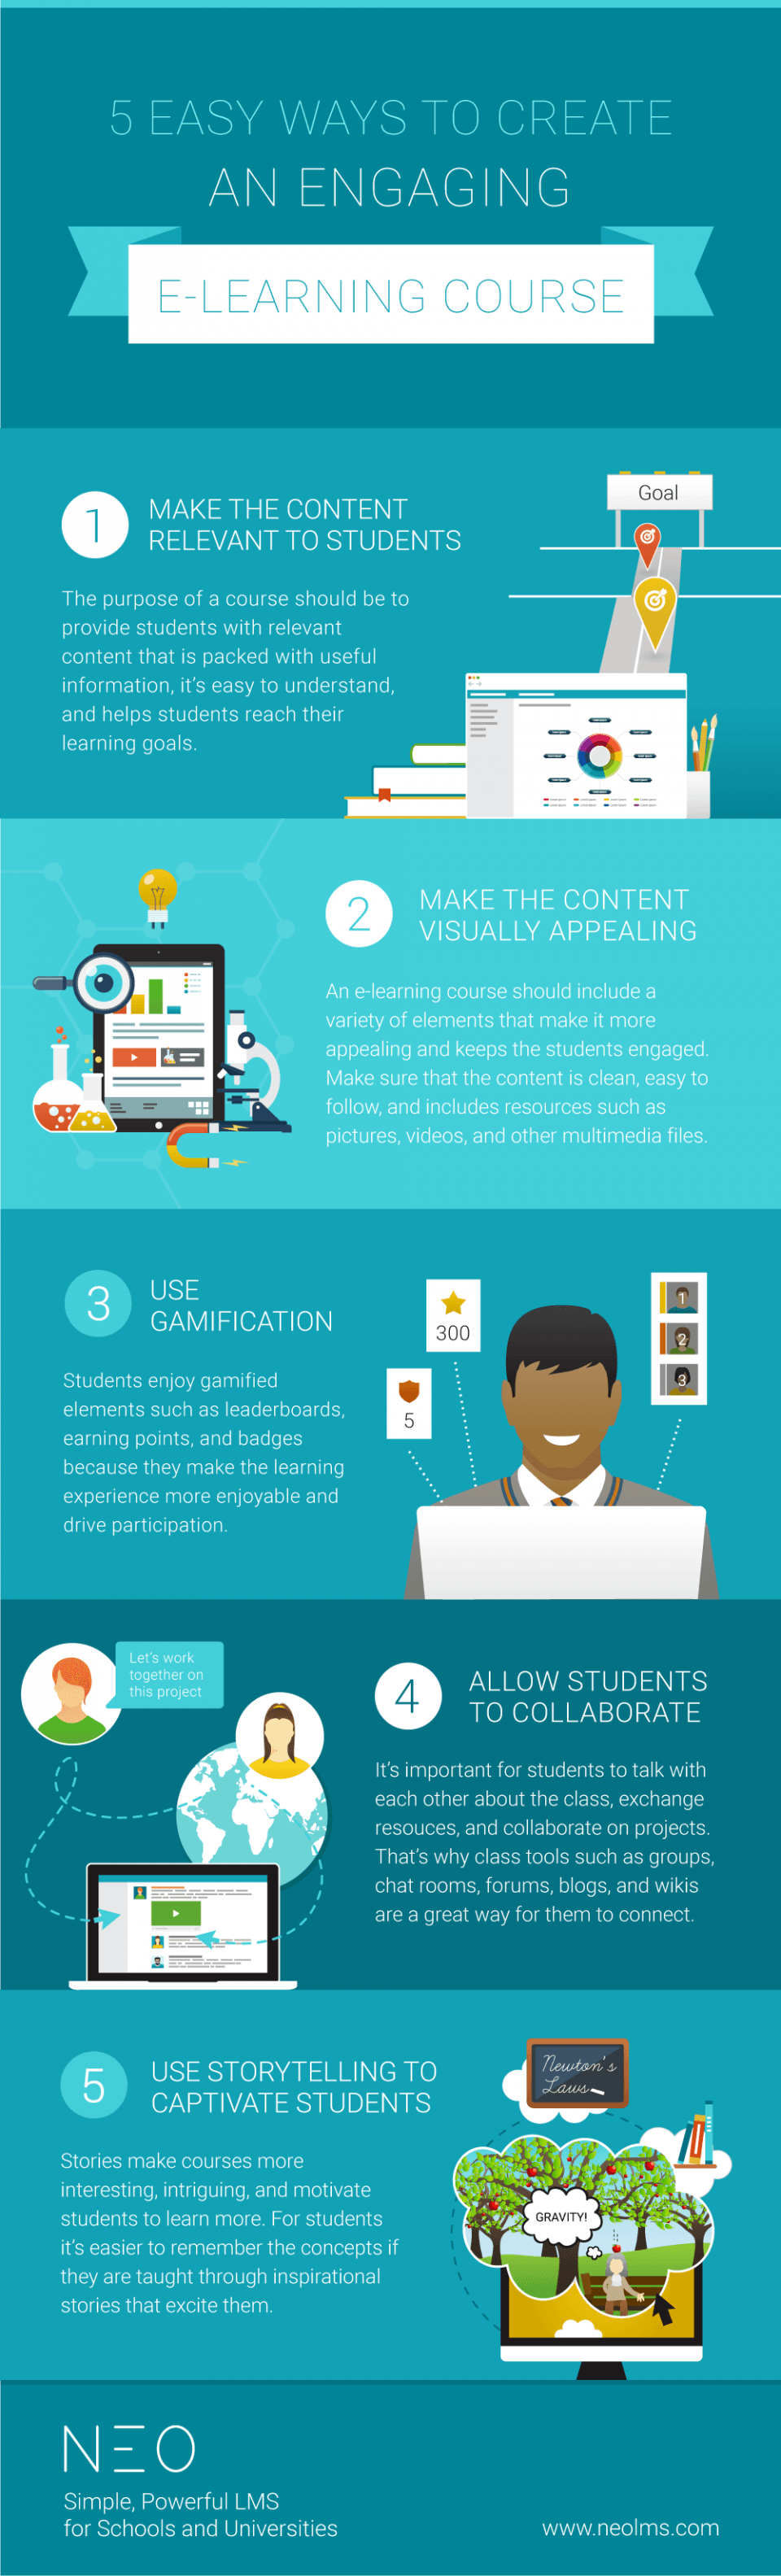 5 Easy Ways to Create an Engaging eLearning Course